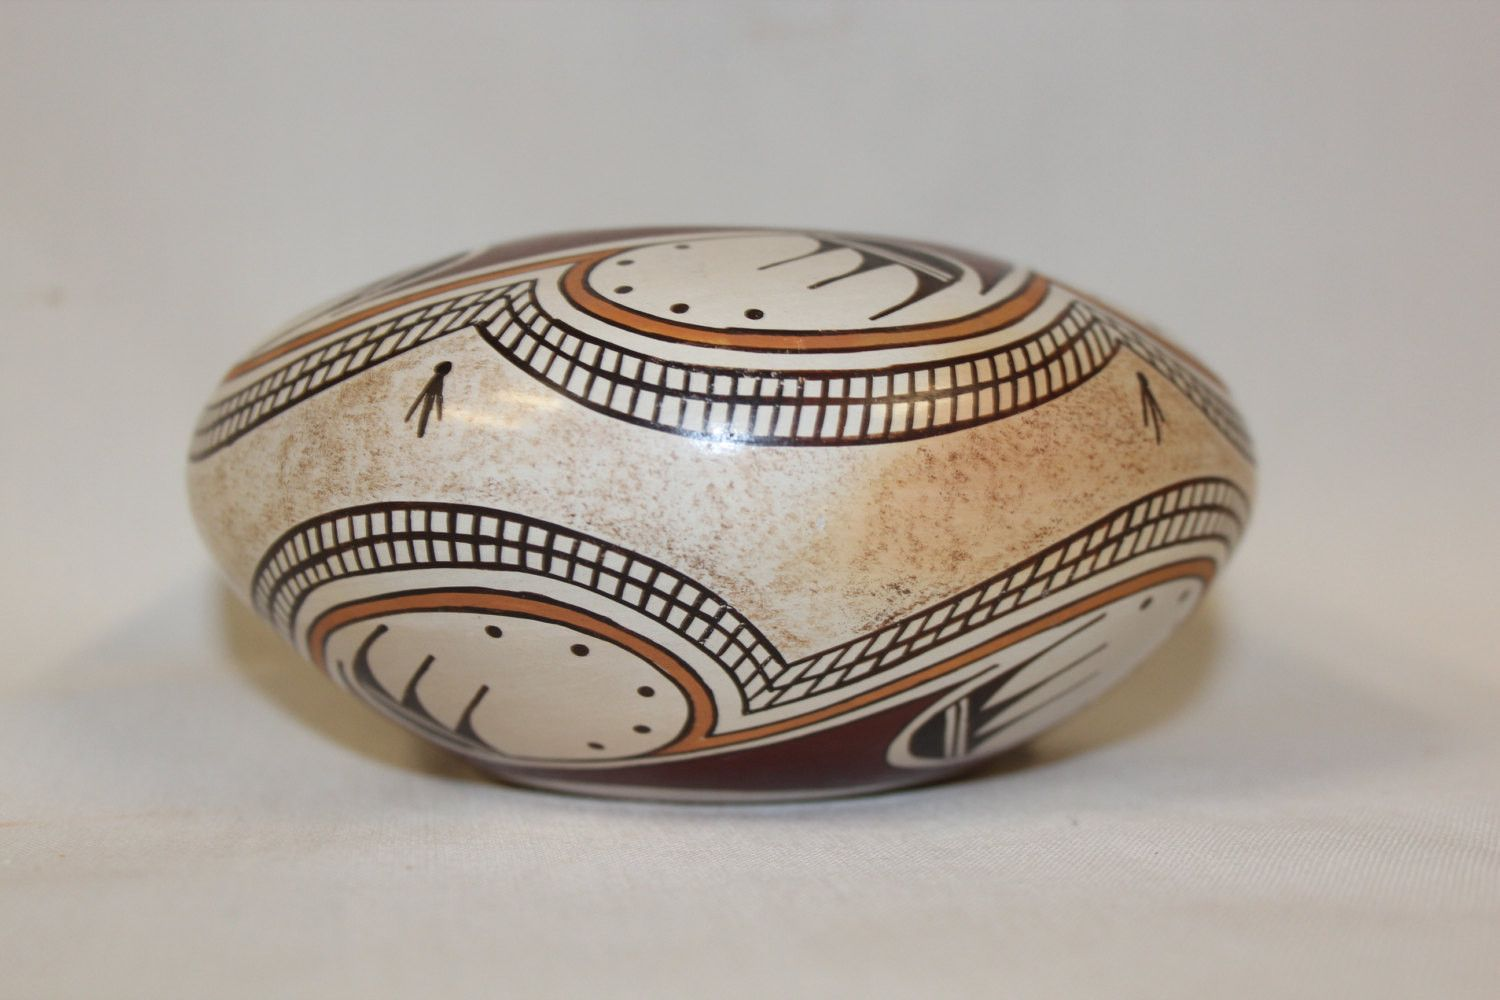 "Hopi 182. Description: Ca. 1980's, Beautiful contemporary poly chrome seed pot with Nampeyo influence, avian patterns. Very good condition. 2-3/4"" x 5-1/2"" Tyra is the daughter of well-known Hopi arti"